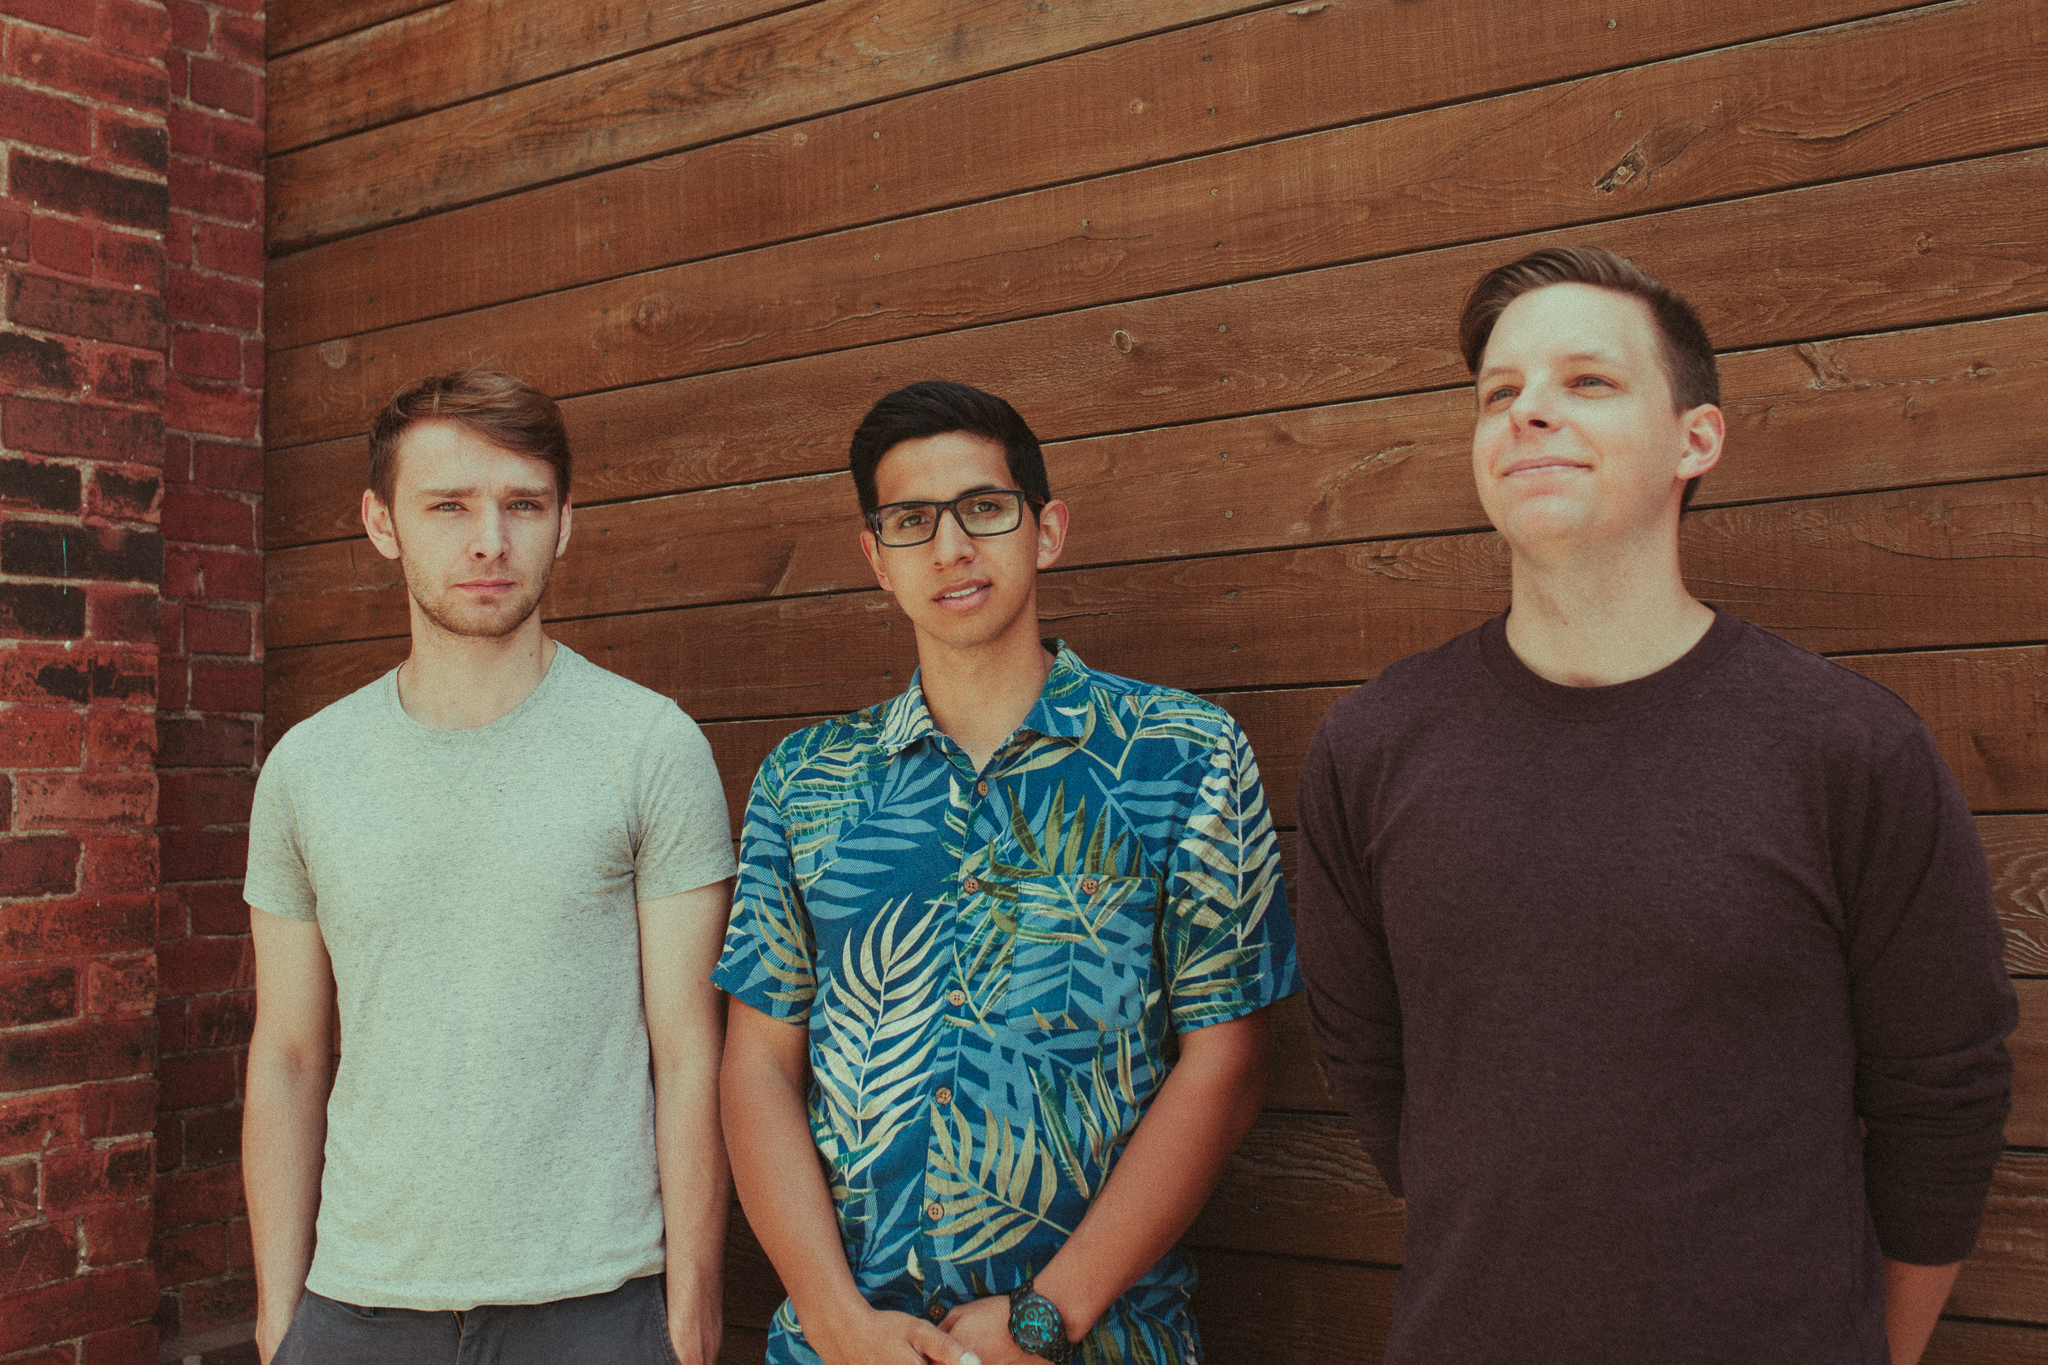 """PREMIERE: """"Petrified"""" is aggressive, catchy pop-punk from Arcane Ghosts"""